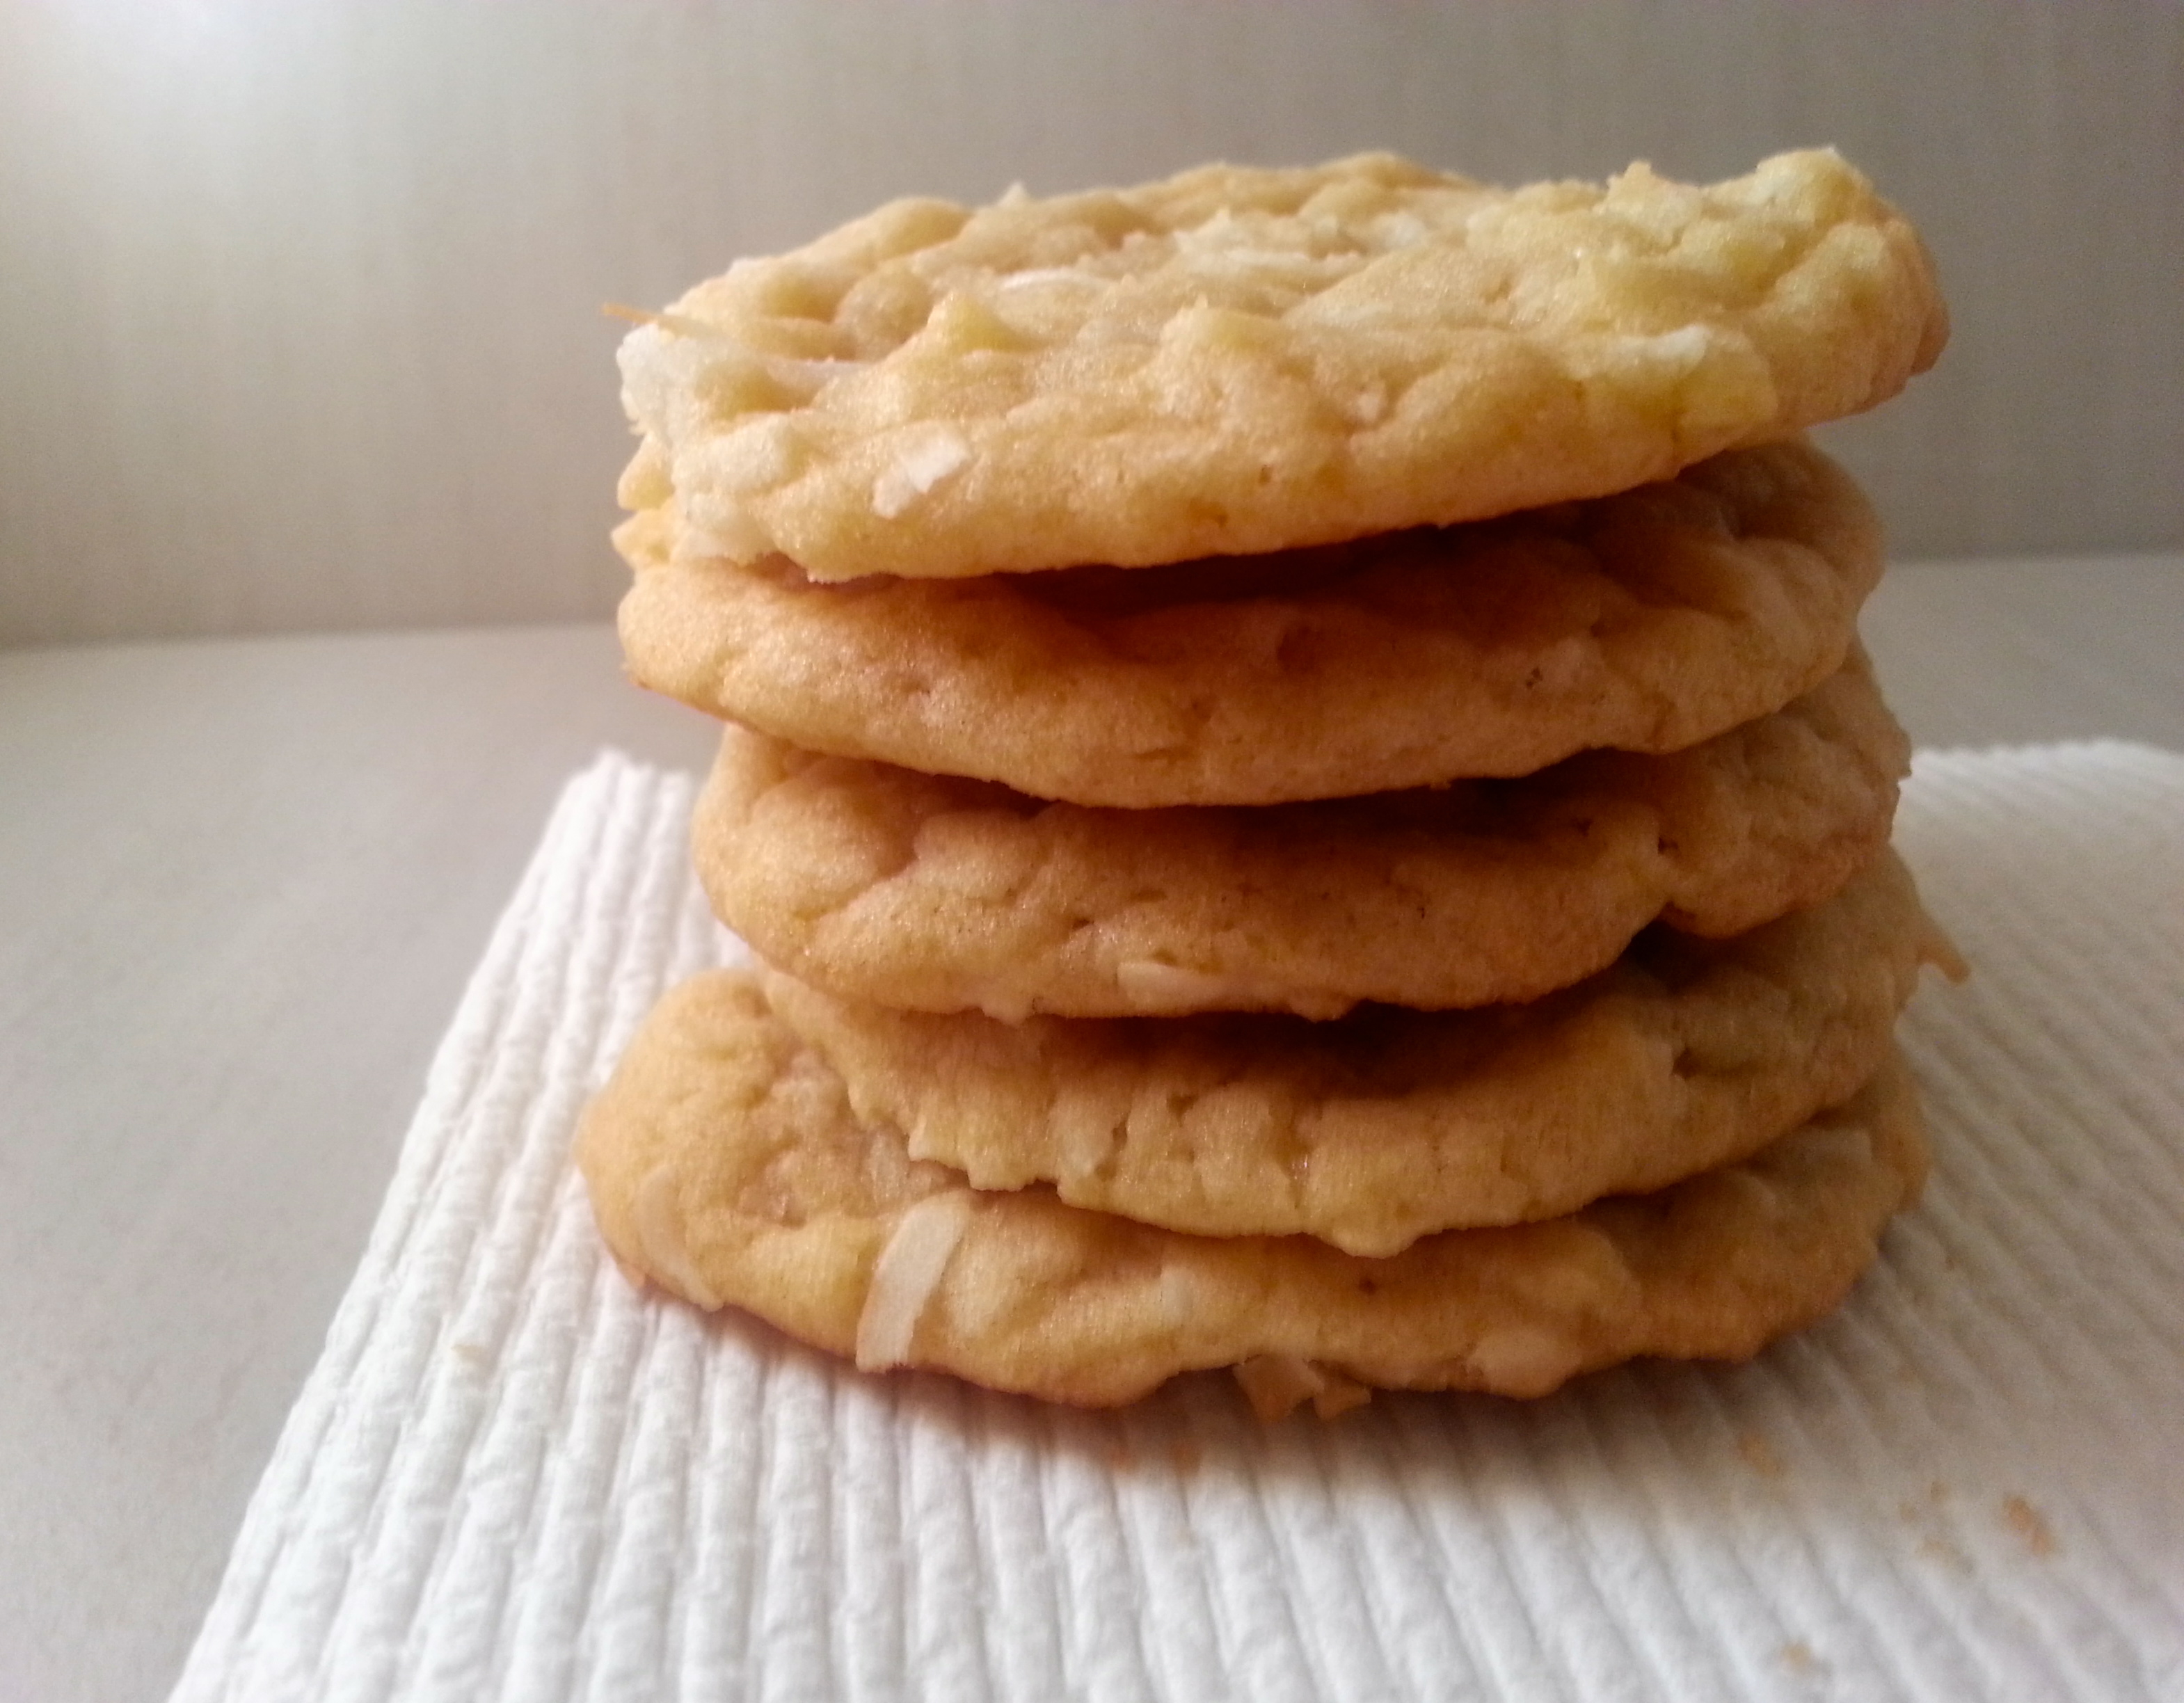 ... coconut cookie recipe a try. The cookies were excellent: chewy, light